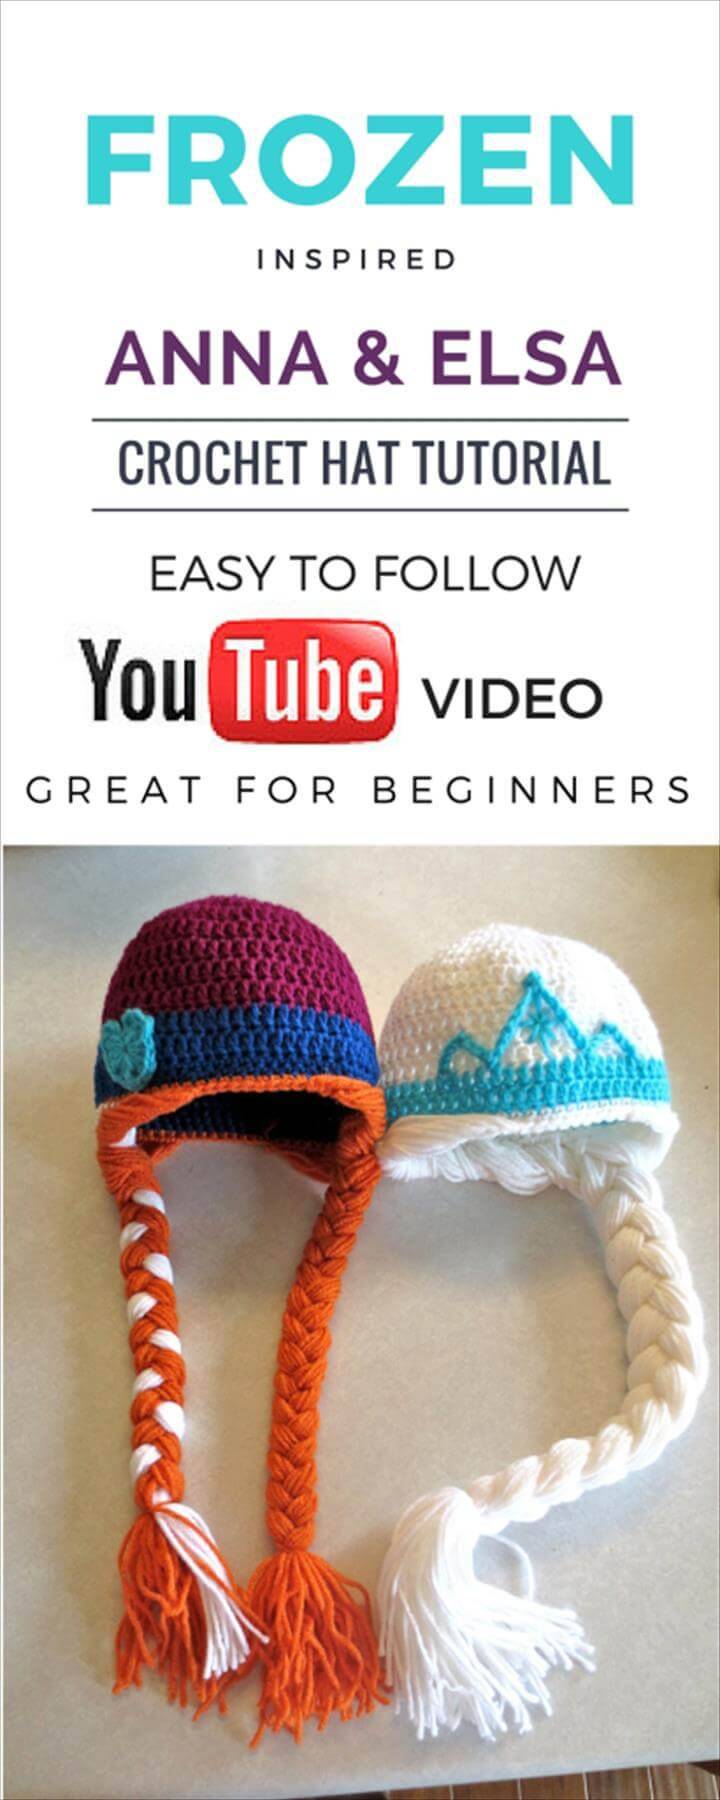 crochet baby hat video tutorial